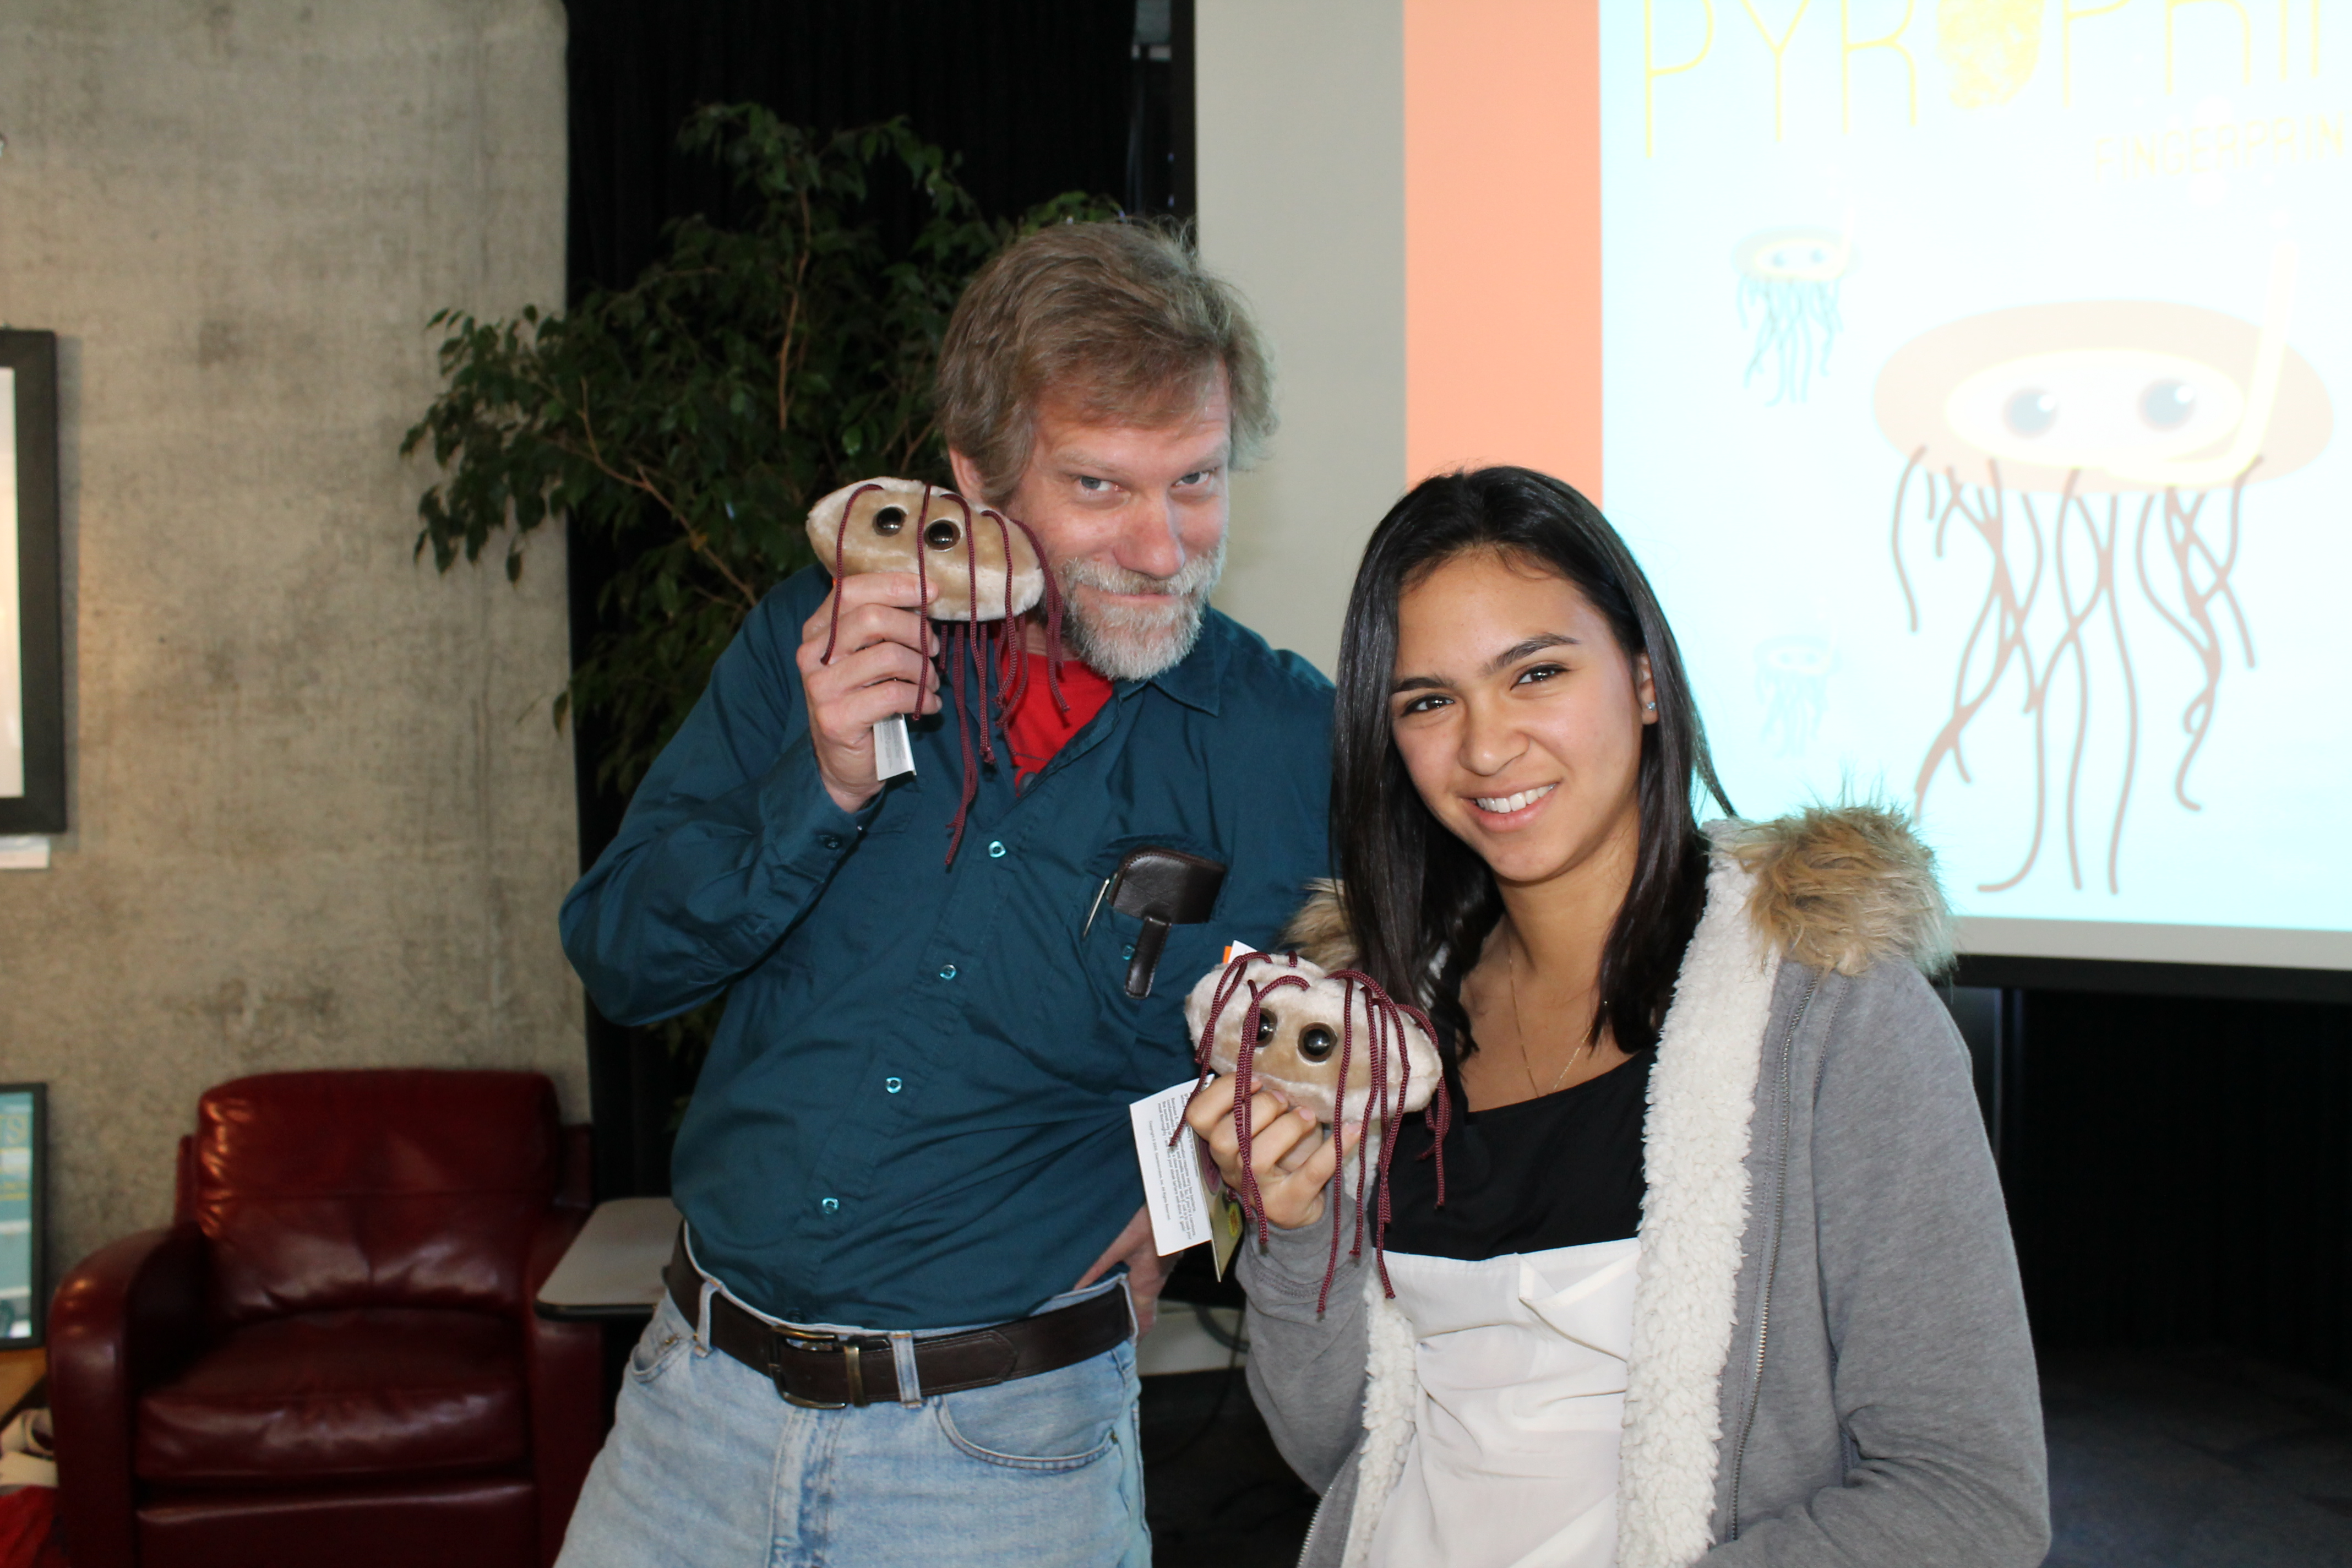 A bearded man and a young woman stand next to each other, smiling and holding small stuffed animal models of E. coli, which are fuzzy, oval-shaped and have two big eyes and little tentacles.